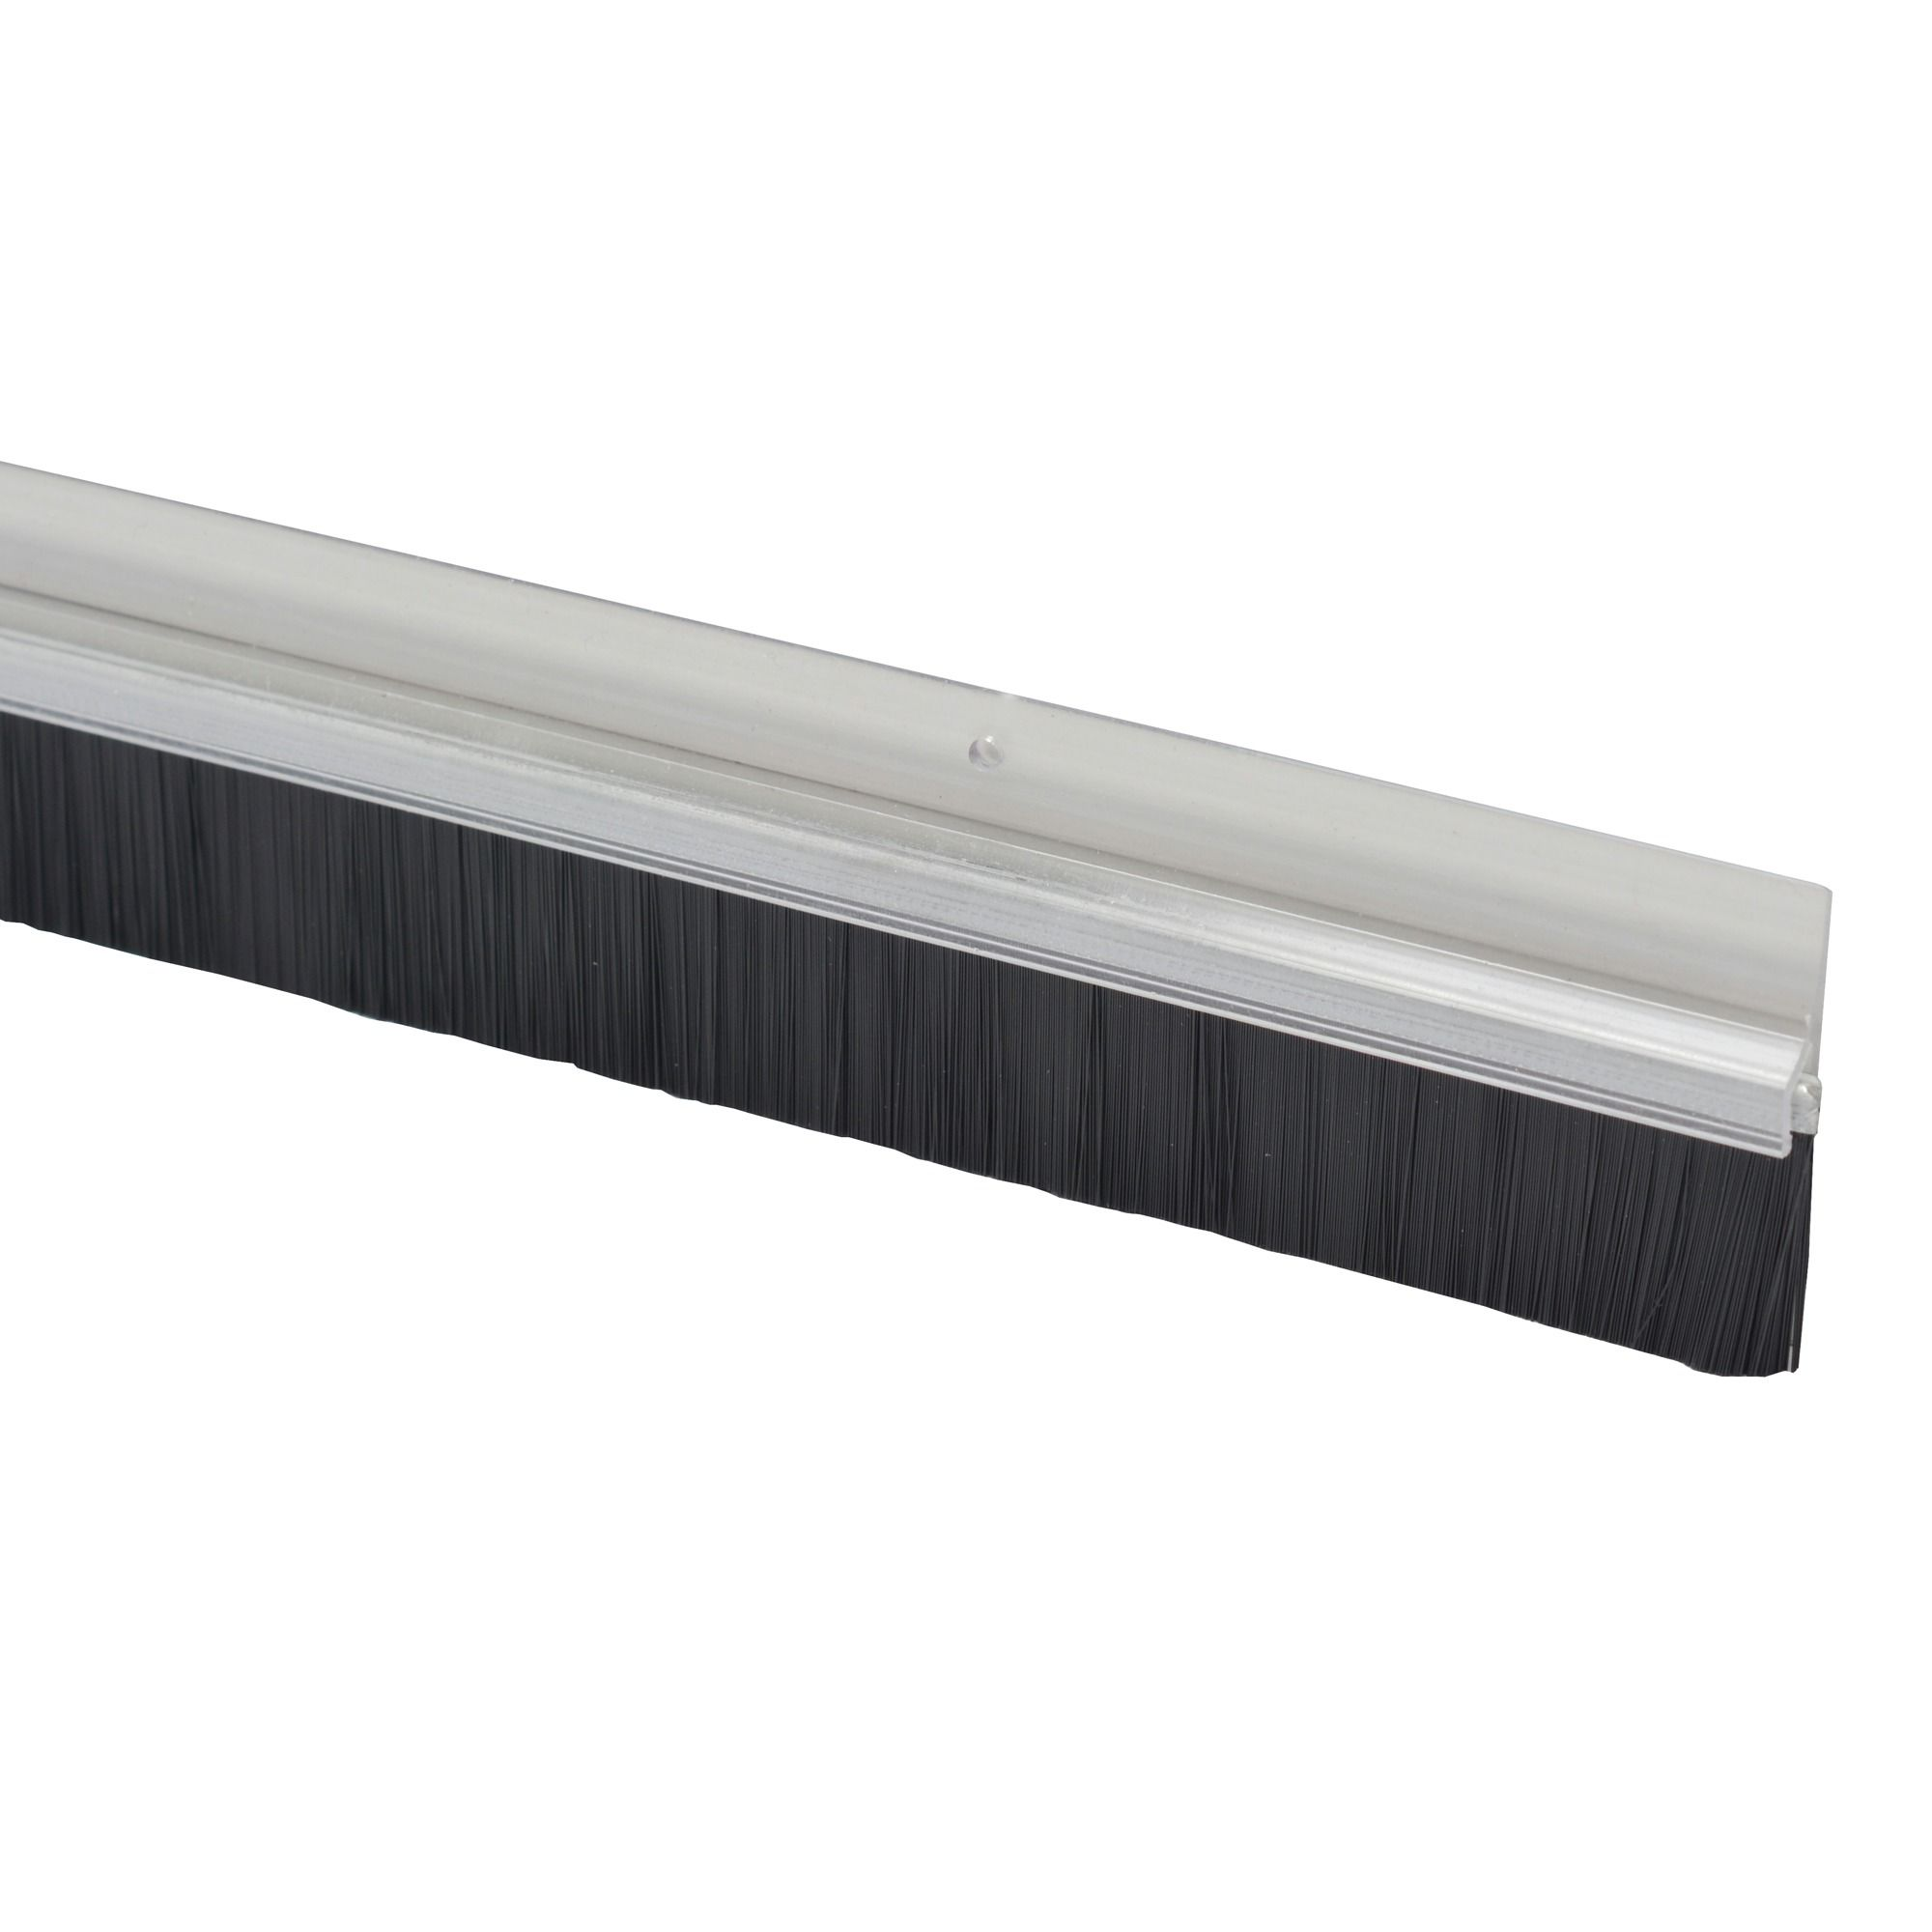 Tochtstrip Praxis Gamma Tochtstrip Met Borstel Pvc Transparant 93 Cm Entree Bose